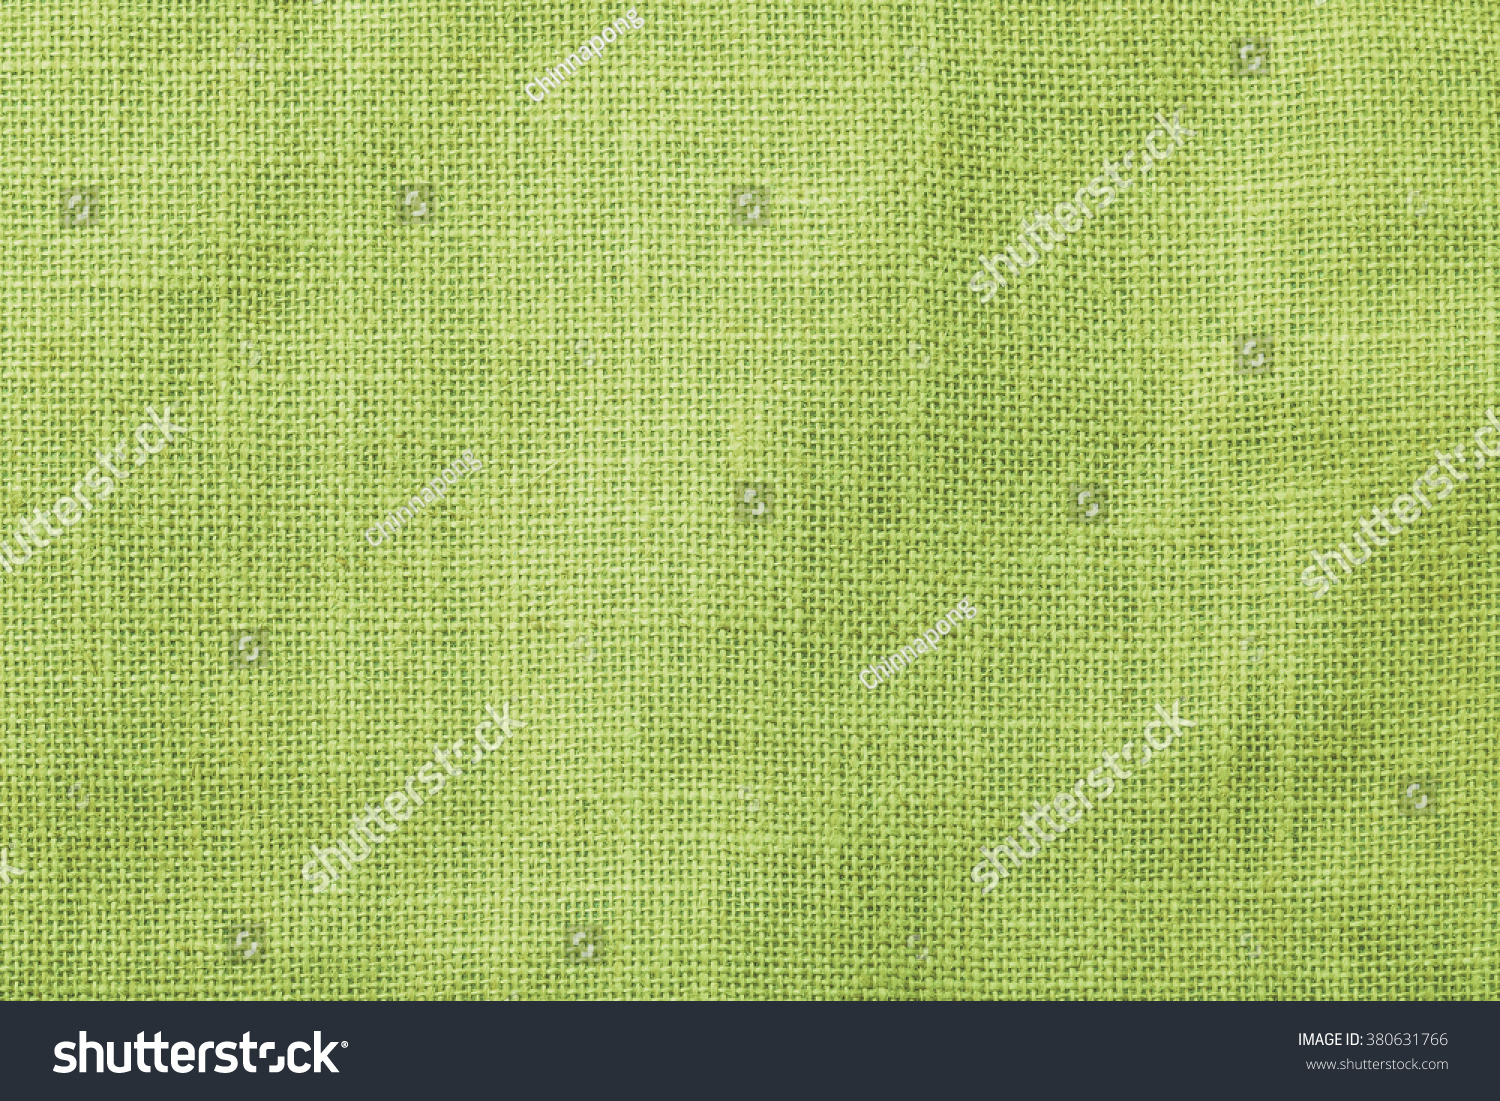 Sackcloth woven texture pattern background light green earth color tone Eco friendly raw organic flax sack cloth fabric textile backdrop Bag rope thread detailed textured burlap canvas